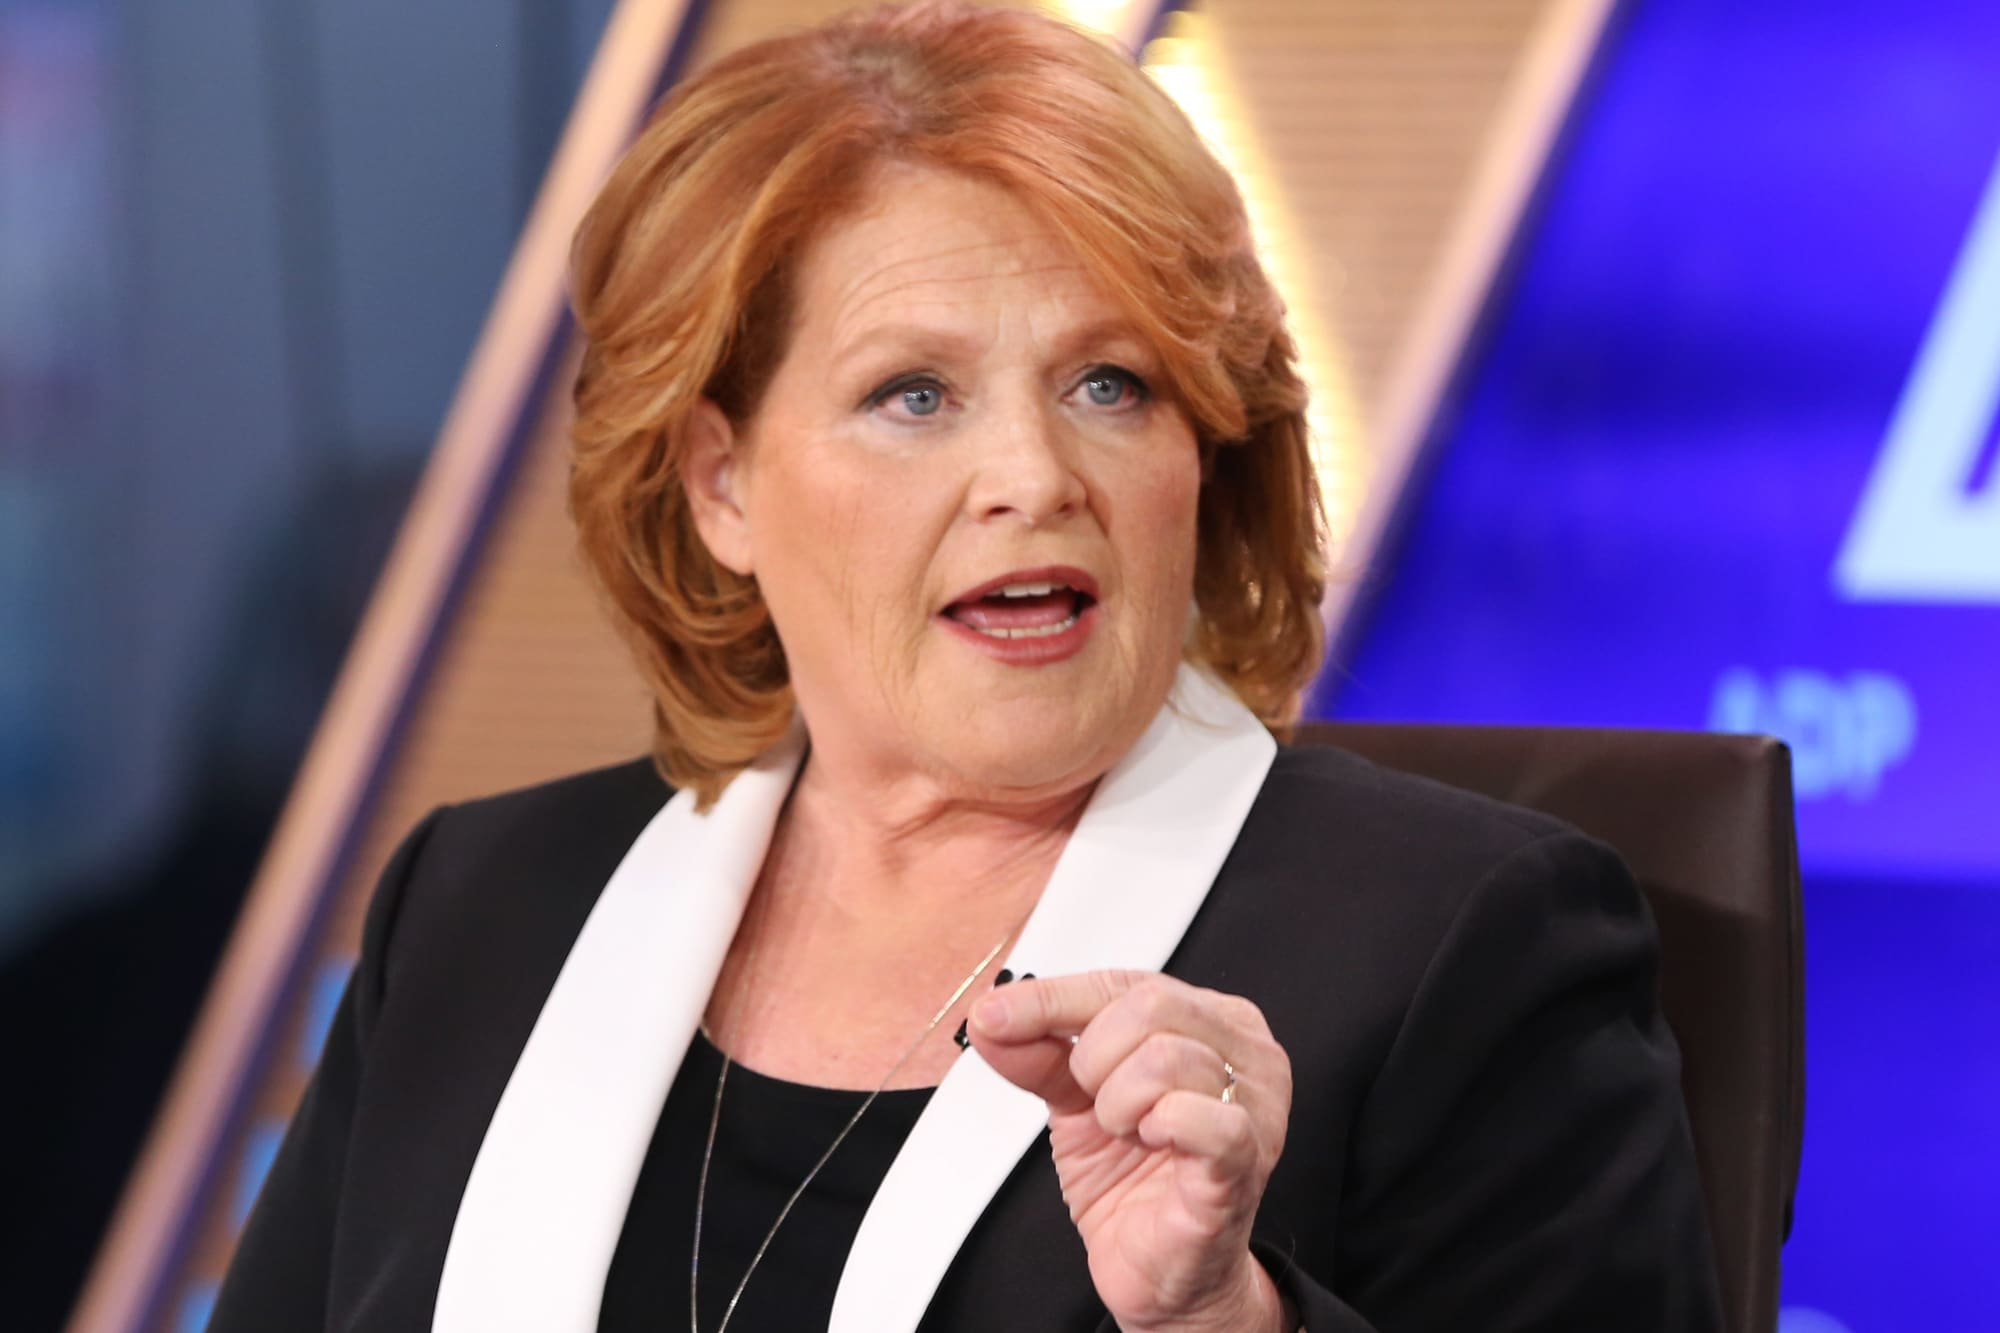 Heidi Heitkamp on what needs to be done to lessen the gap in income inequality